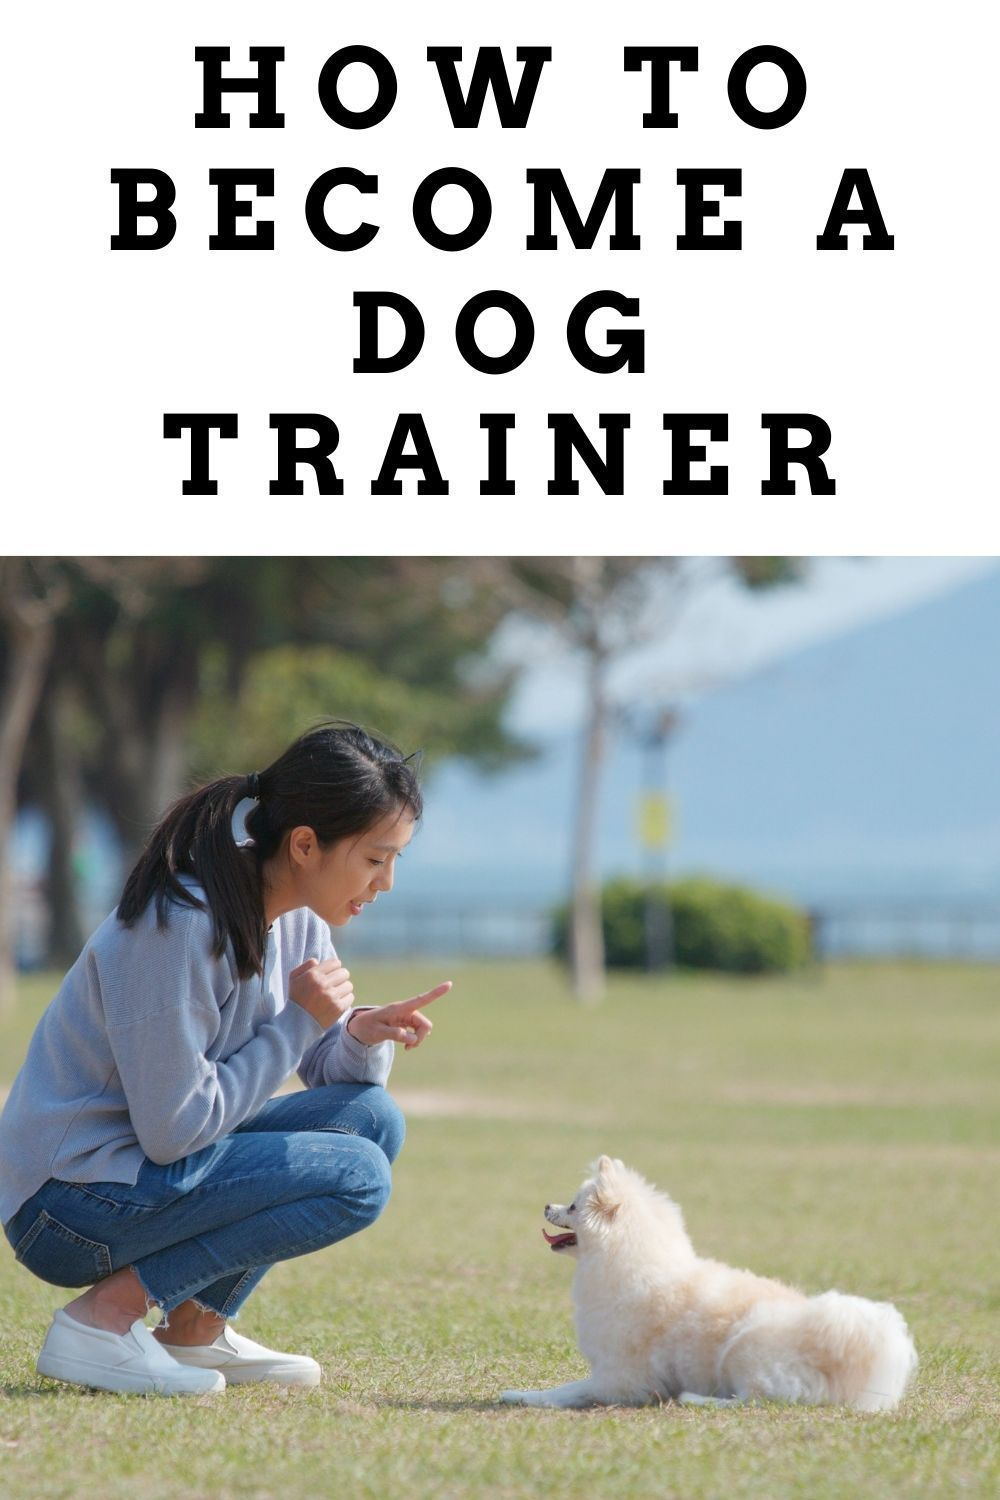 How To Become A Dog Trainer In 2020 Become A Dog Trainer Dog Trainer Dog Training School